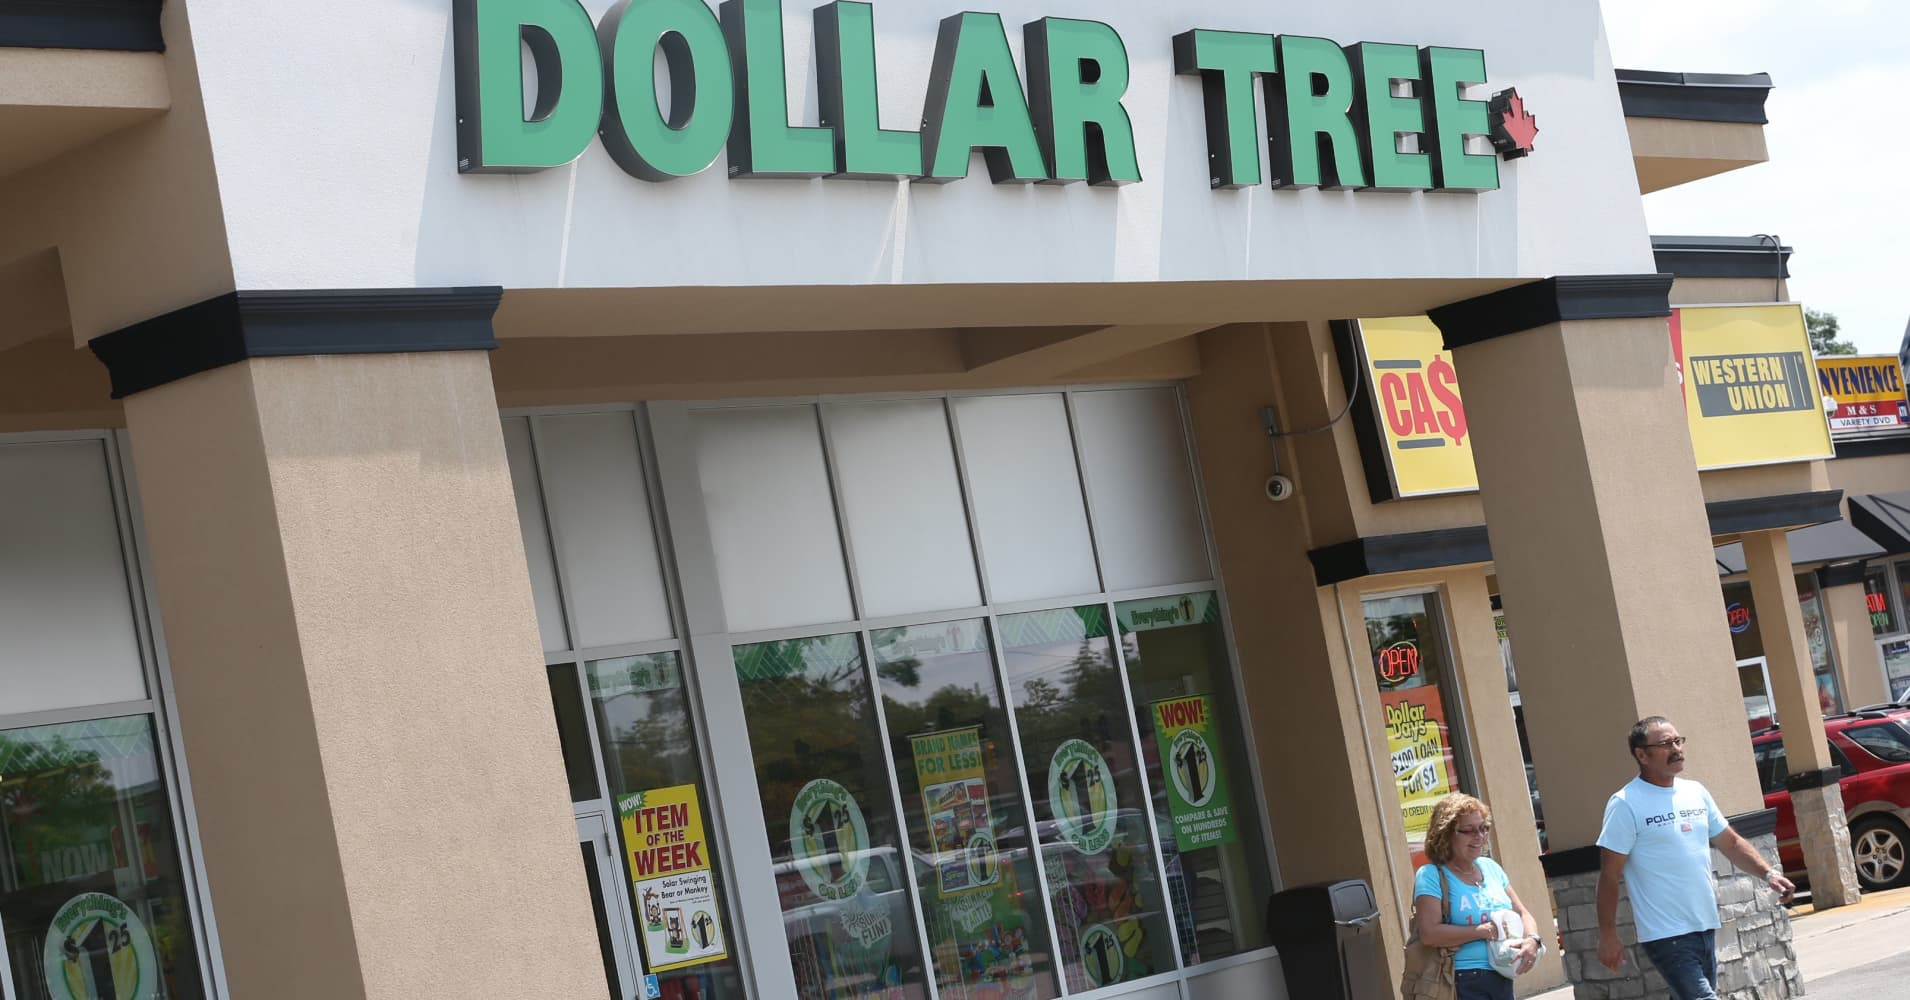 Bitcoin bonanza and Dollar Tree earnings: Here's what could drive markets Thursday